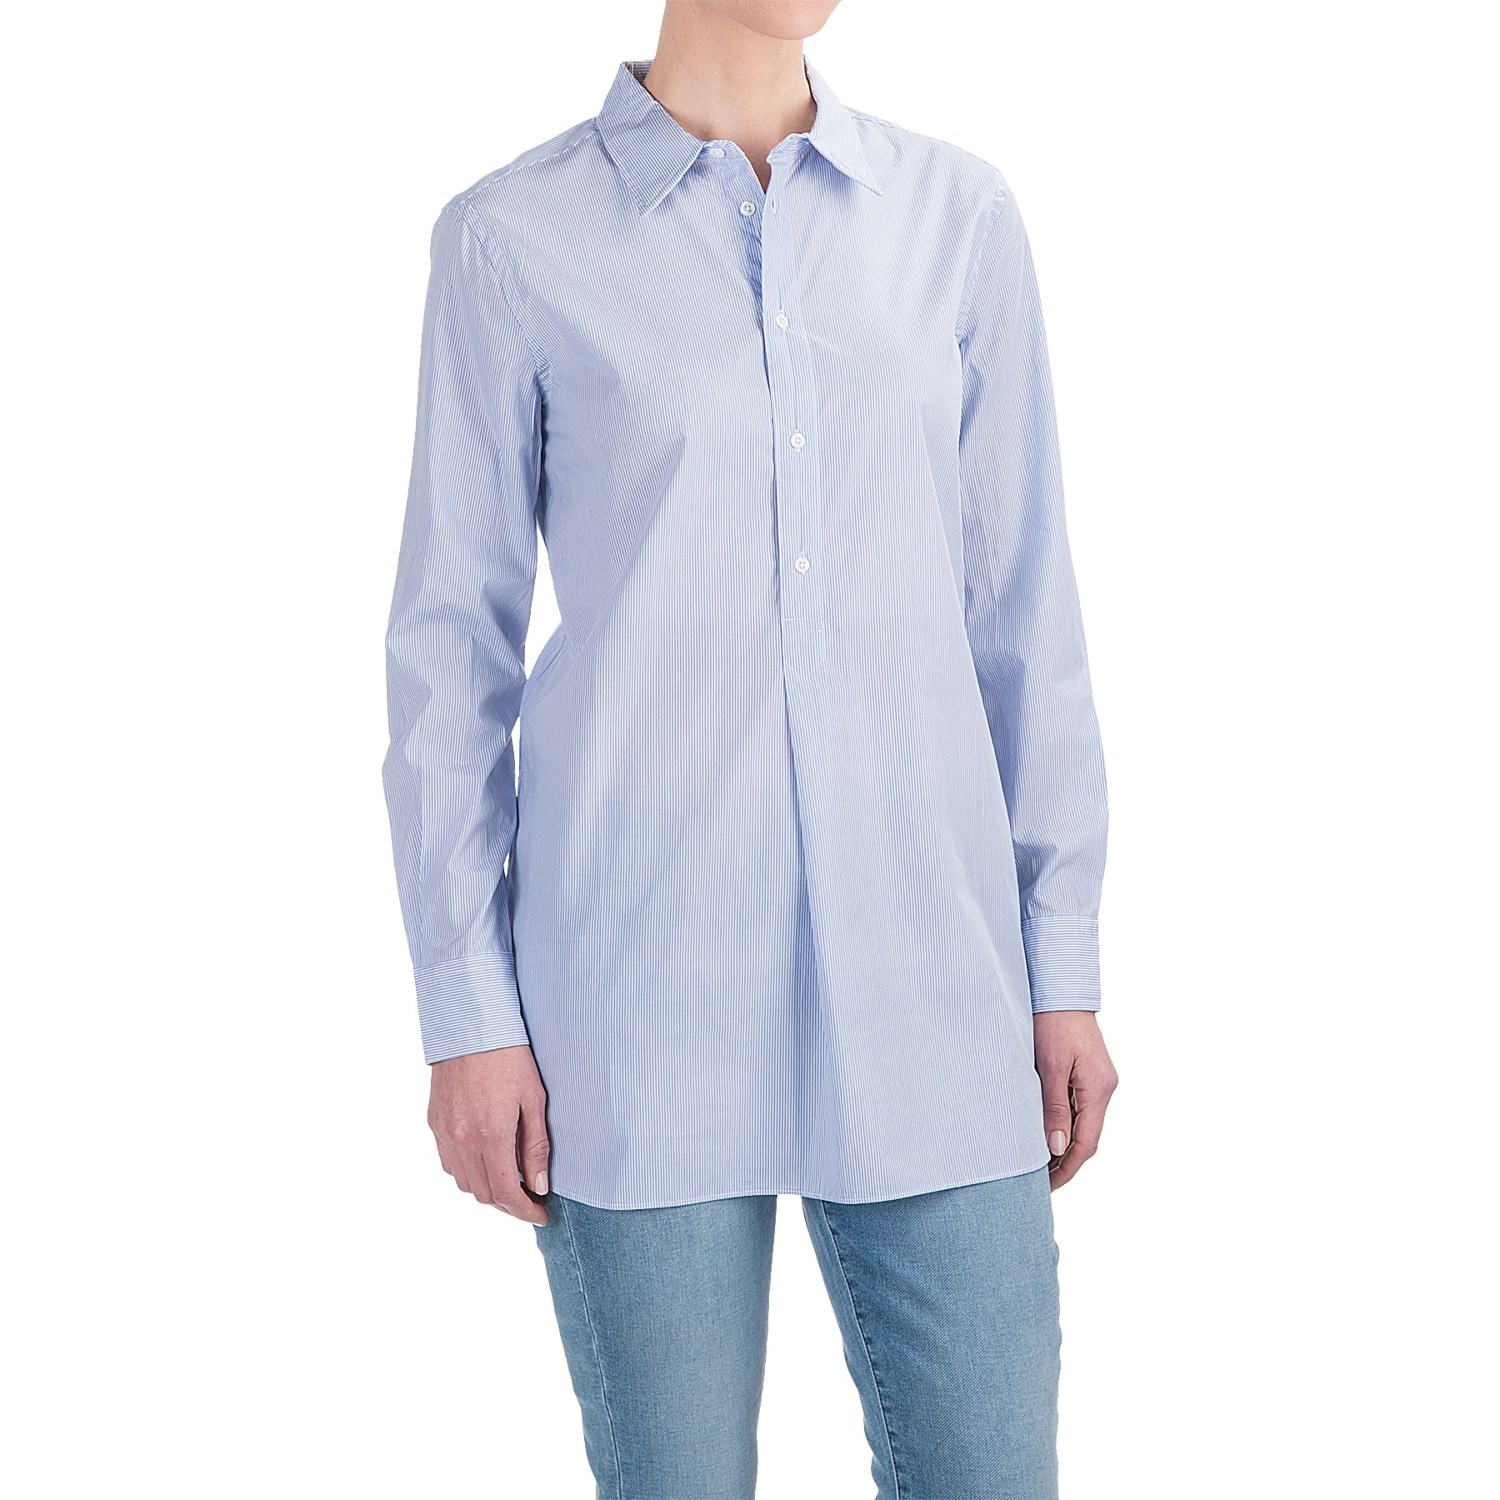 Andrea jovine yarn dyed front placket shirt for women for Blue and white long sleeve shirt